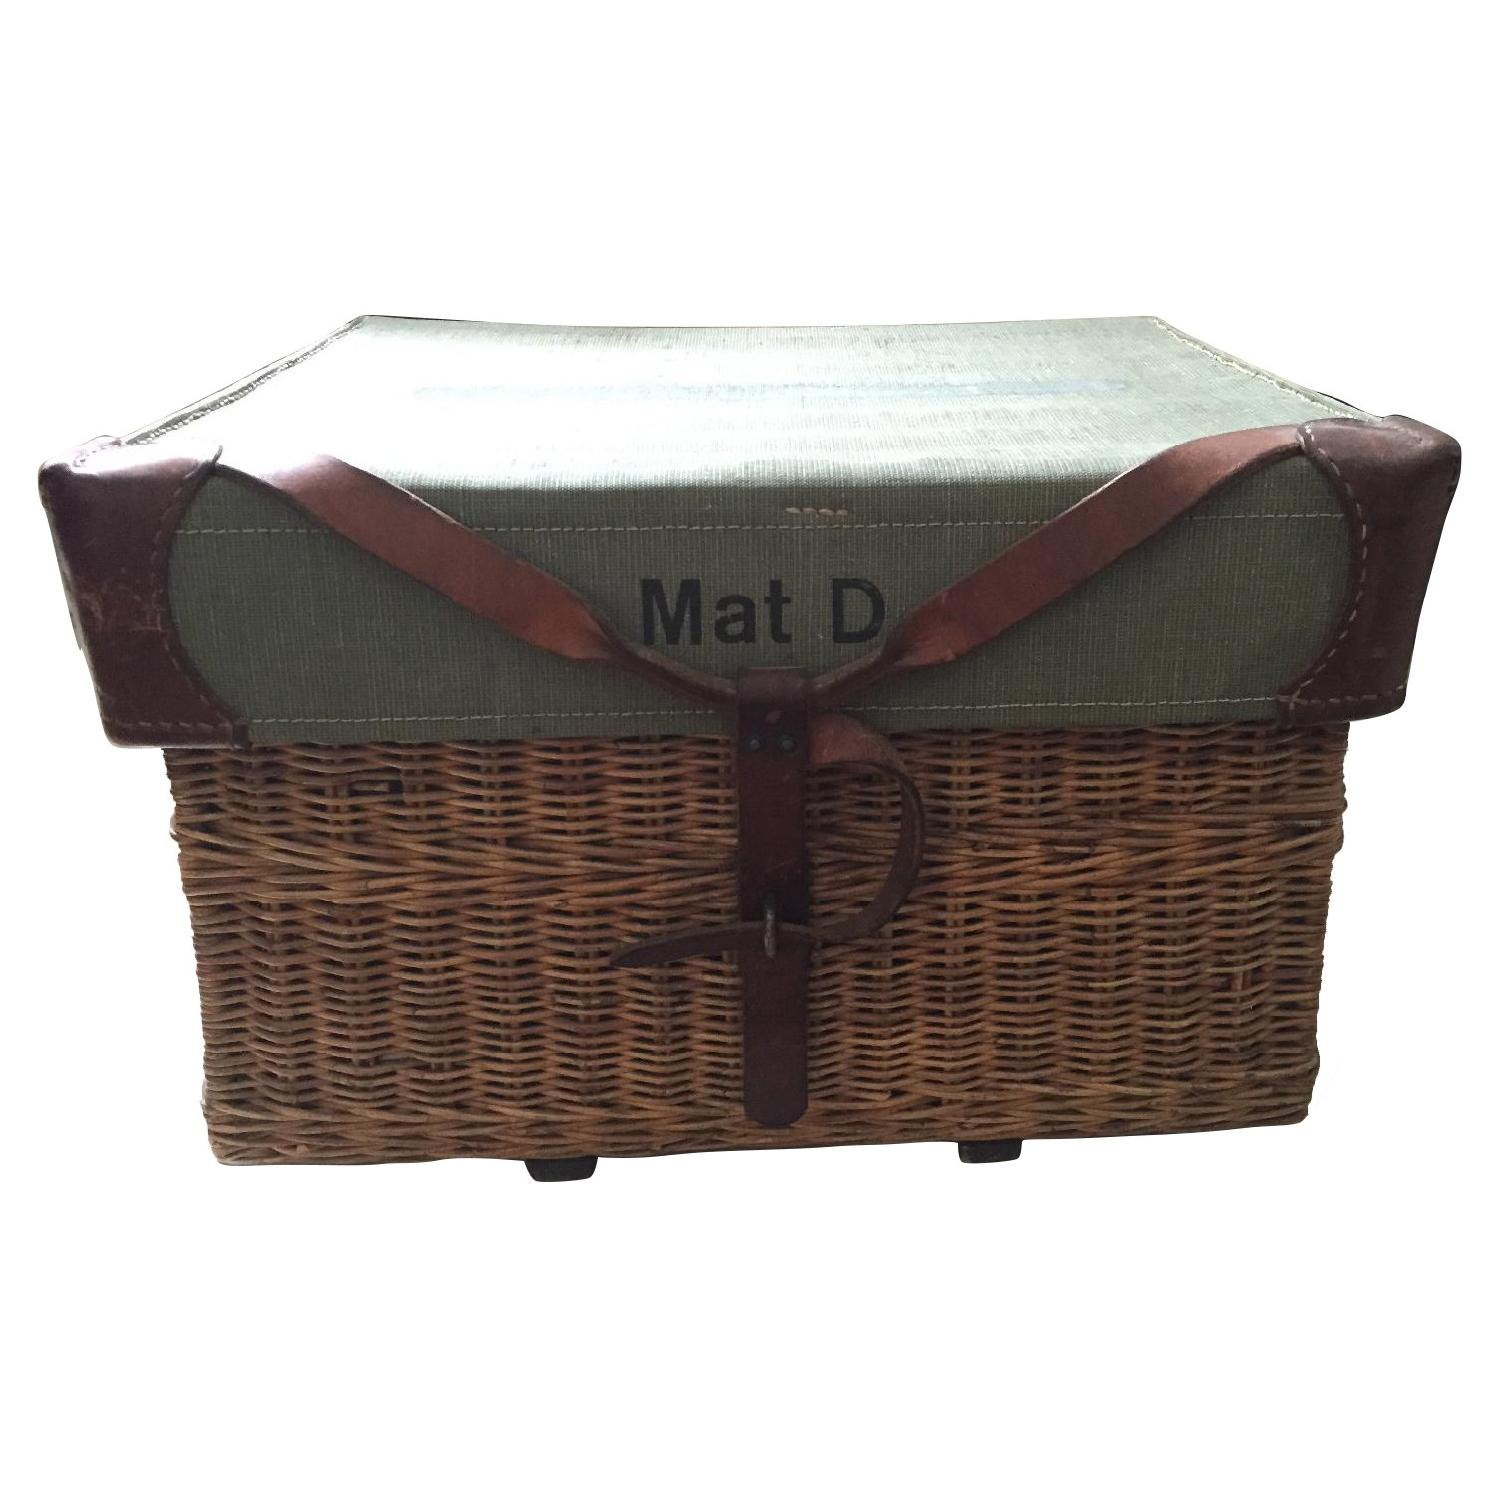 Americana Vintage Leather/Canvas/Straw Trunk - image-0